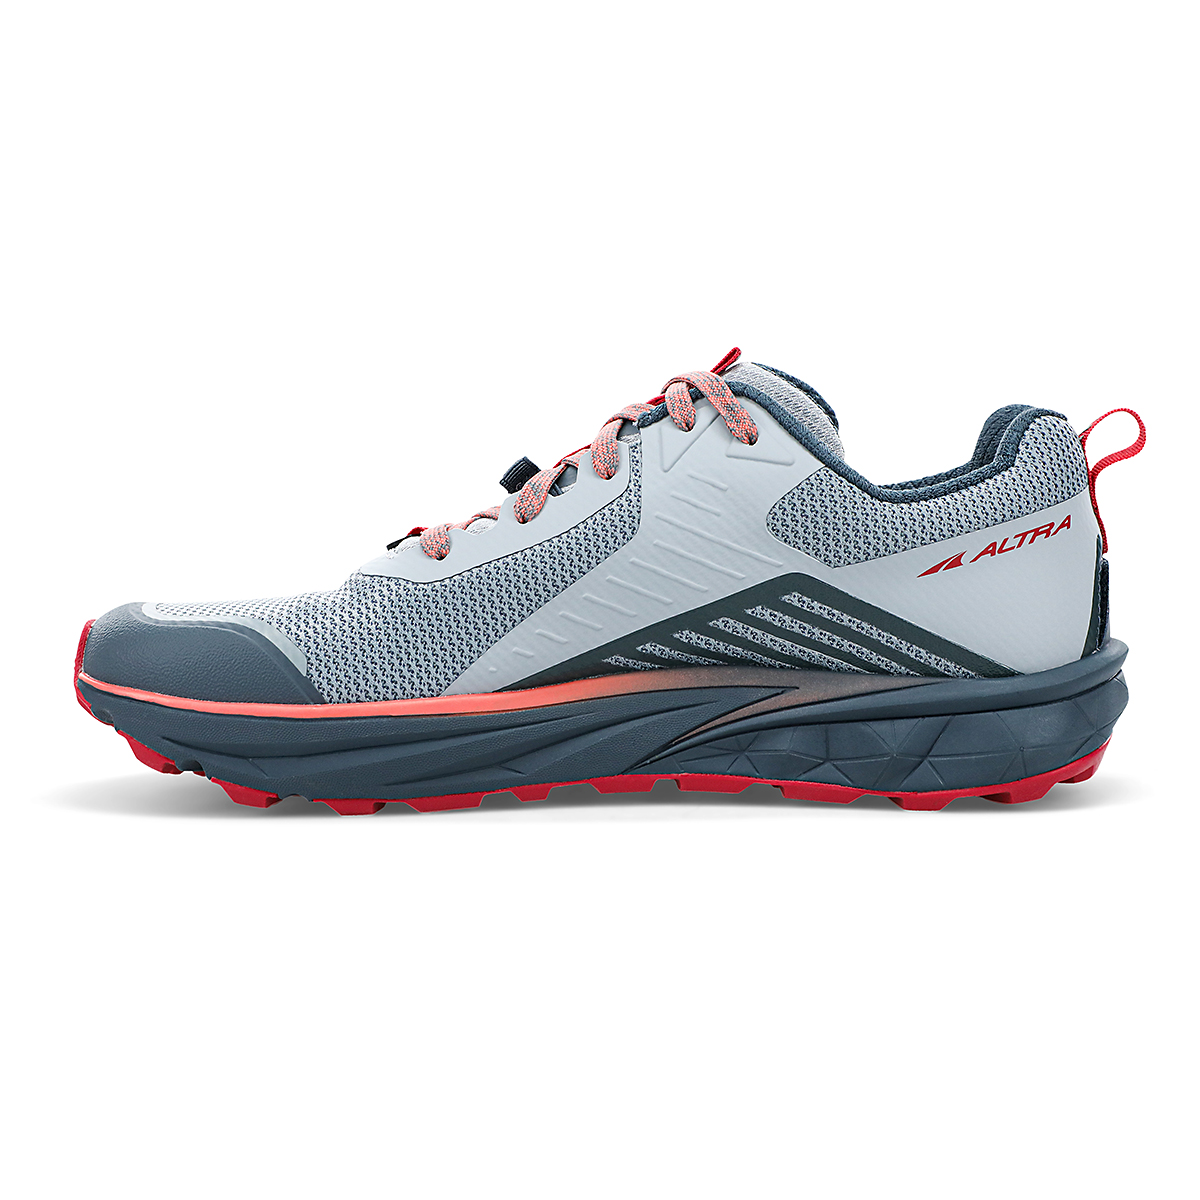 Women's Altra Timp 3 Trail Running Shoe - Color: Gray/Pink - Size: 5.5 - Width: Regular, Gray/Pink, large, image 2